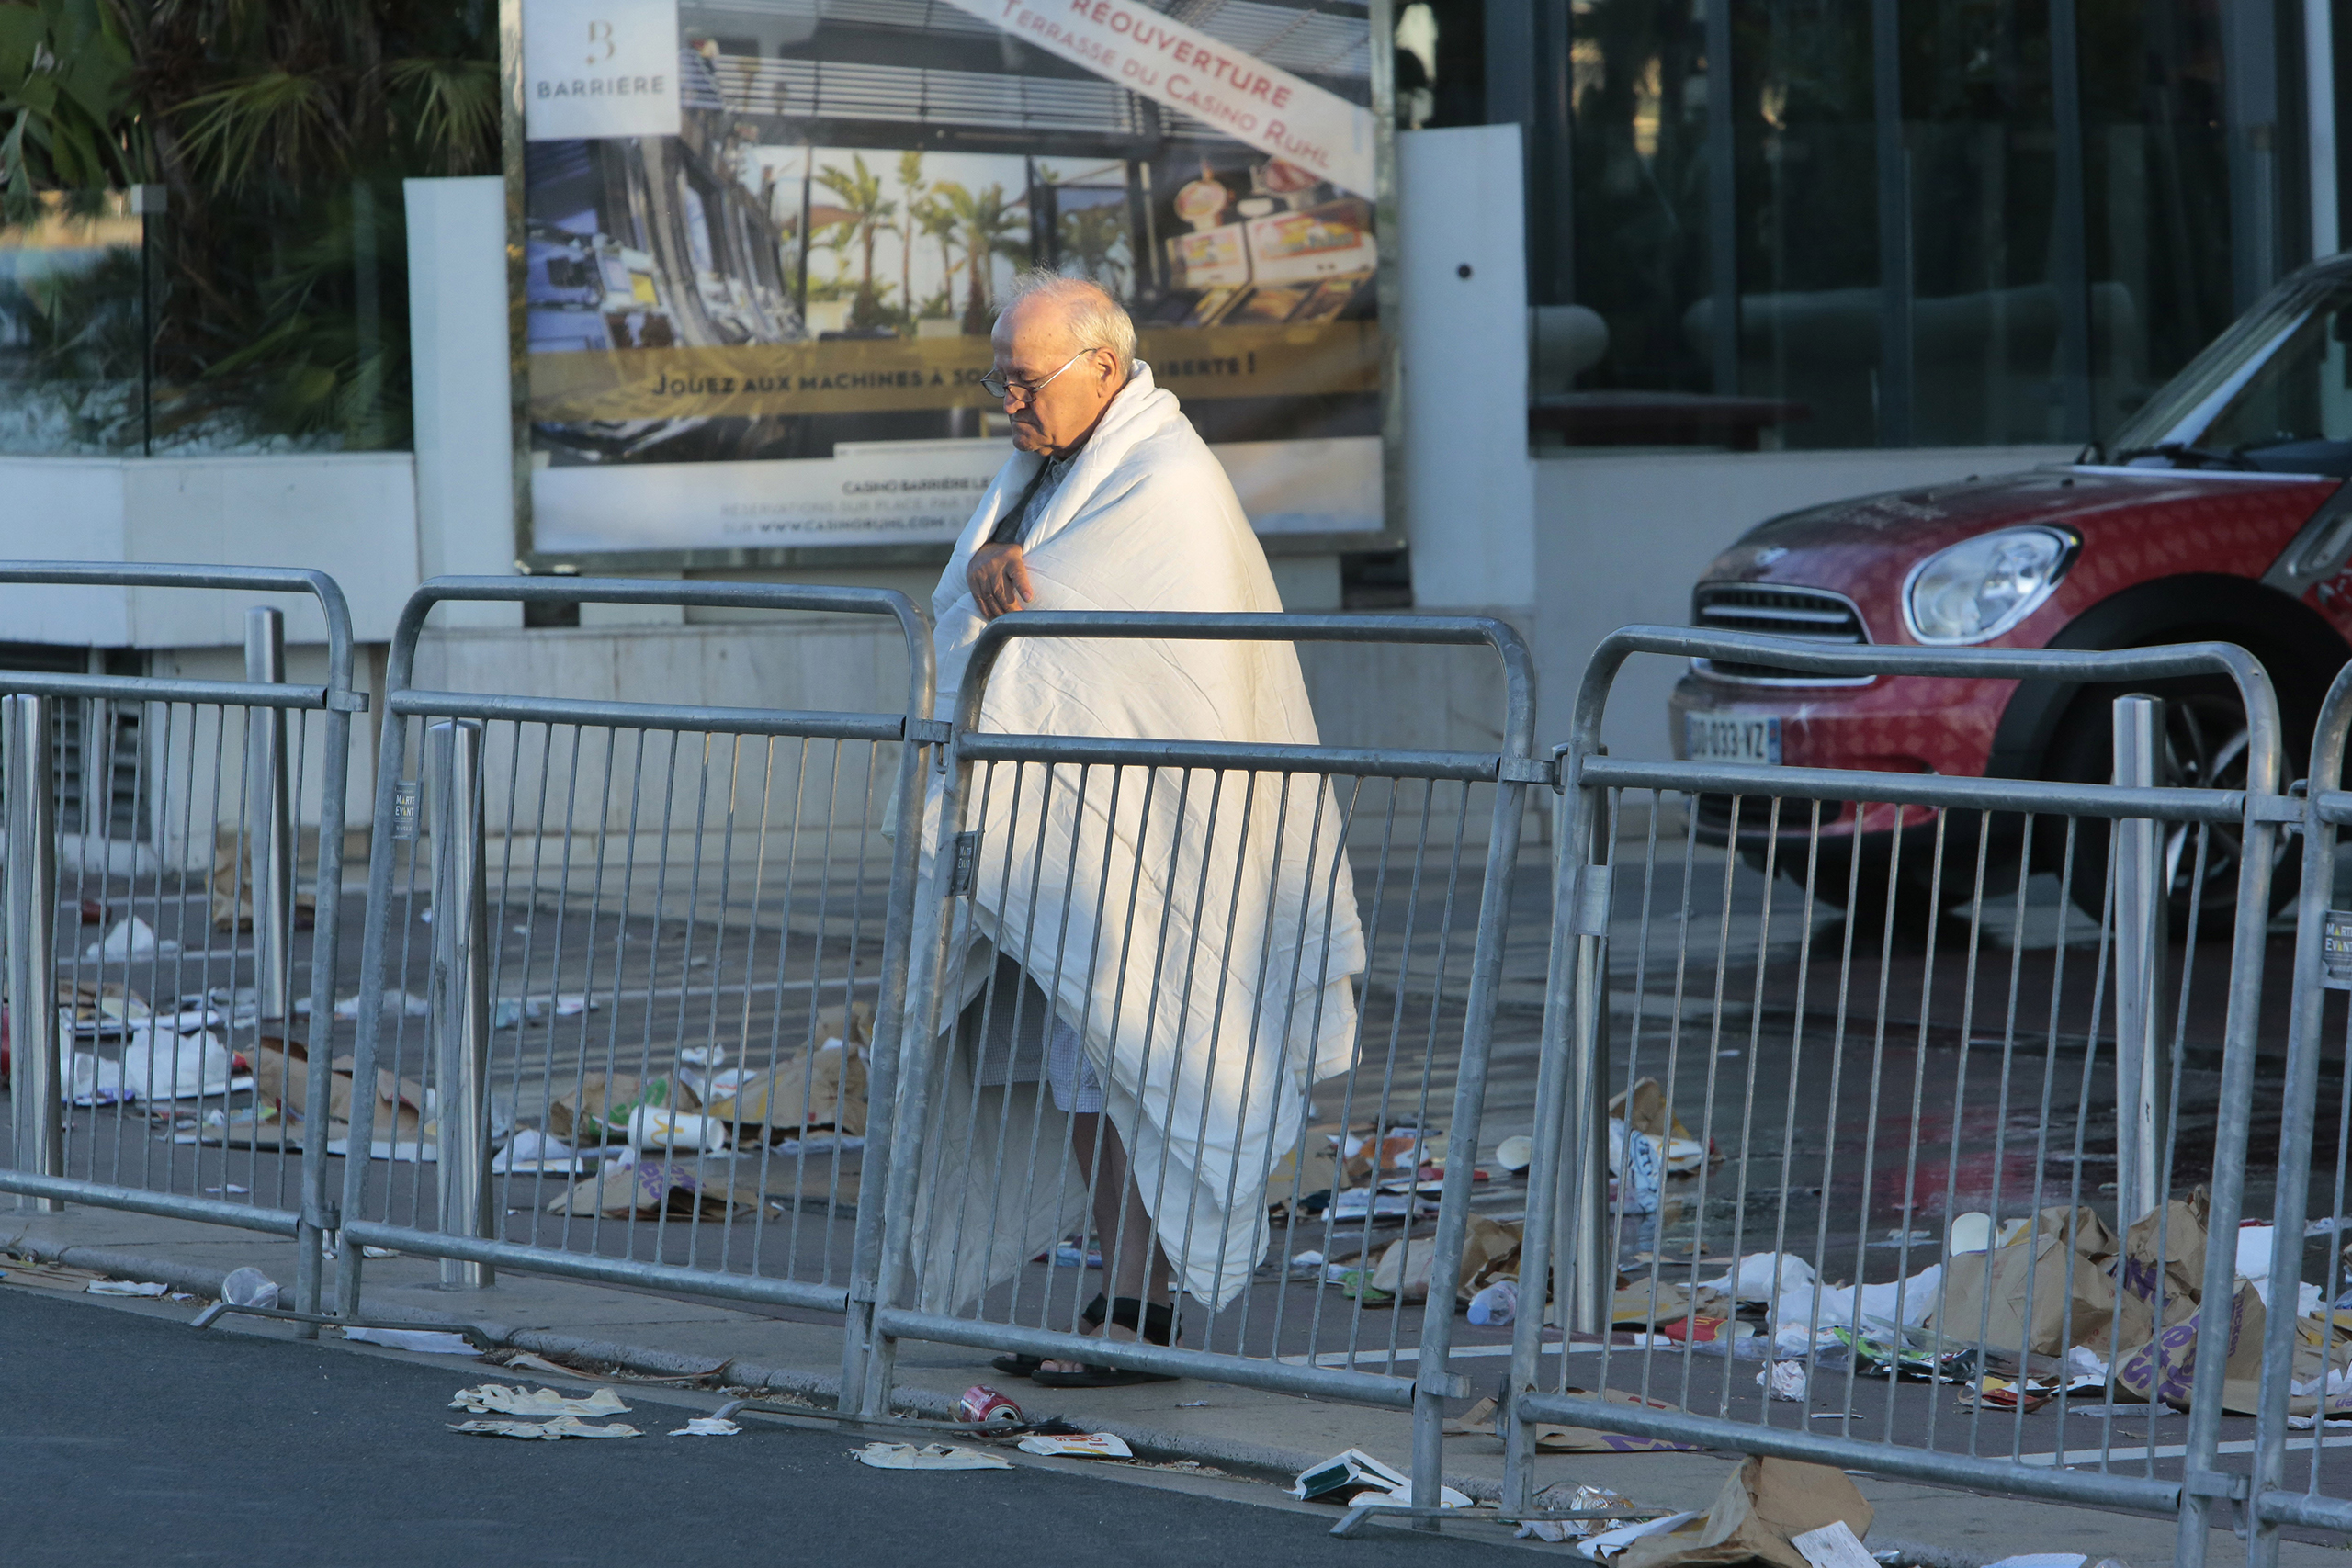 A man at the scene of the truck attack in Nice, France, on July 15, 2016. Authorities said a driver plowed into people celebrating Bastille Day late on Thursday, killing at least 84 people.